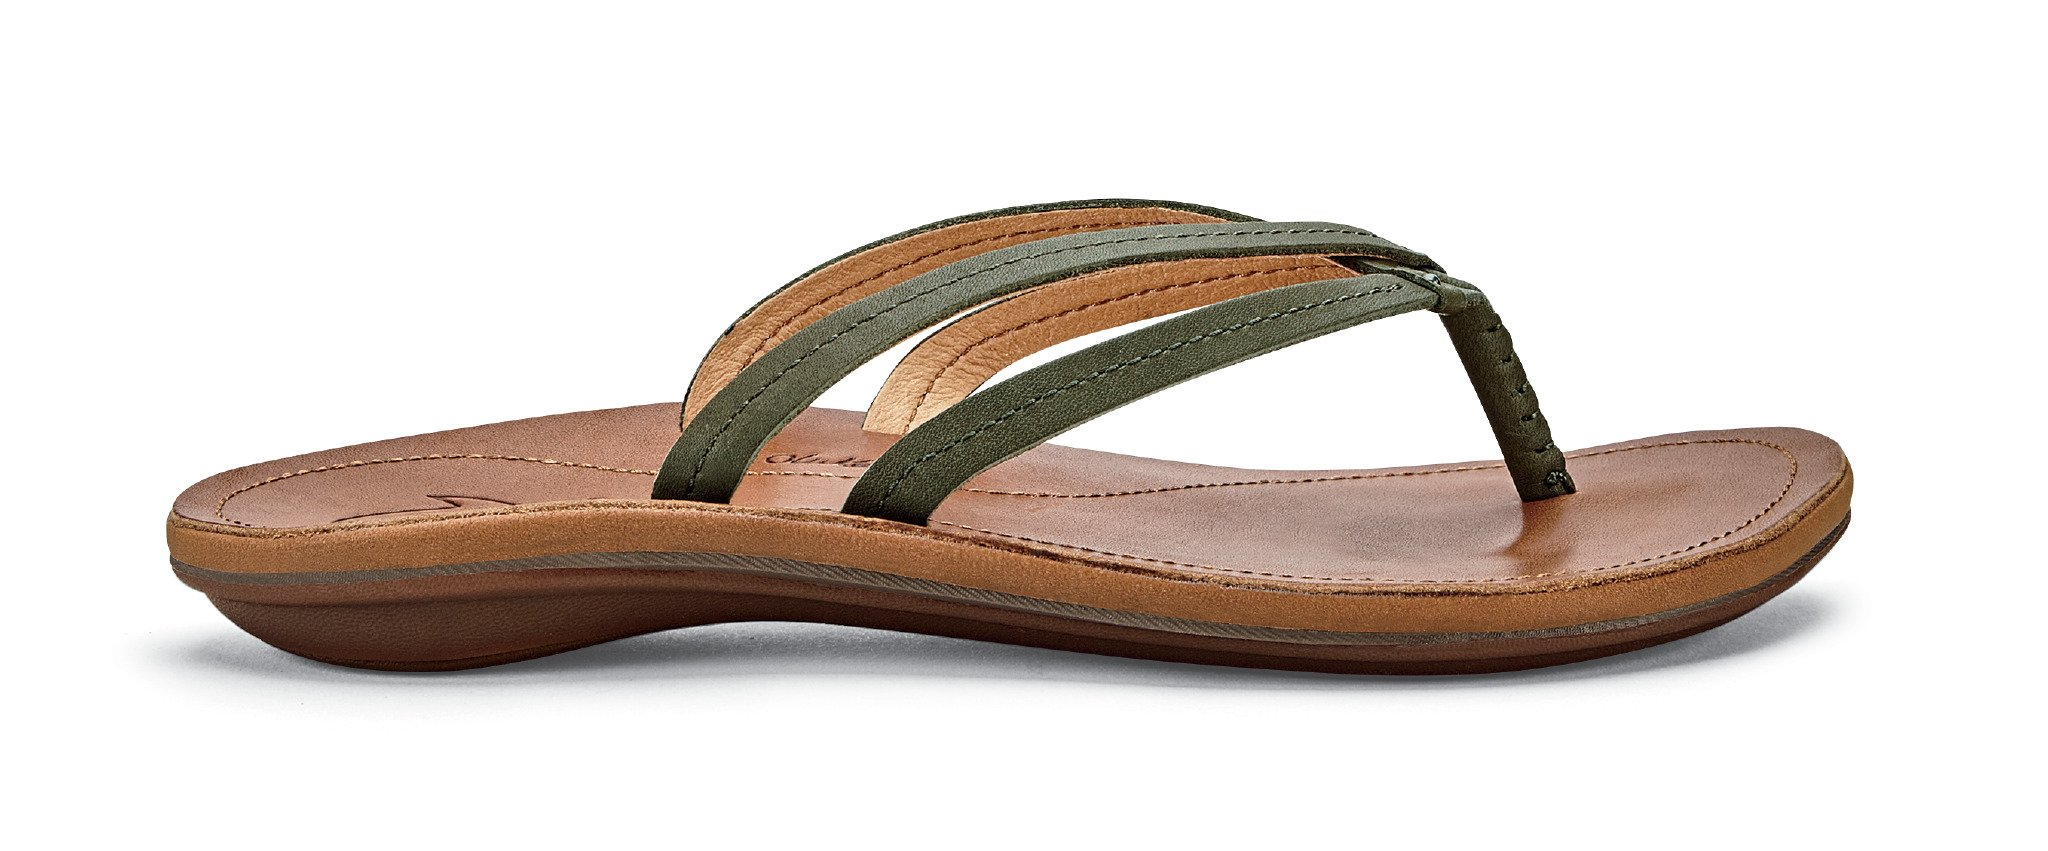 OLUKAI U'I Sandals - Women's Dusty Olive/Sahara 7